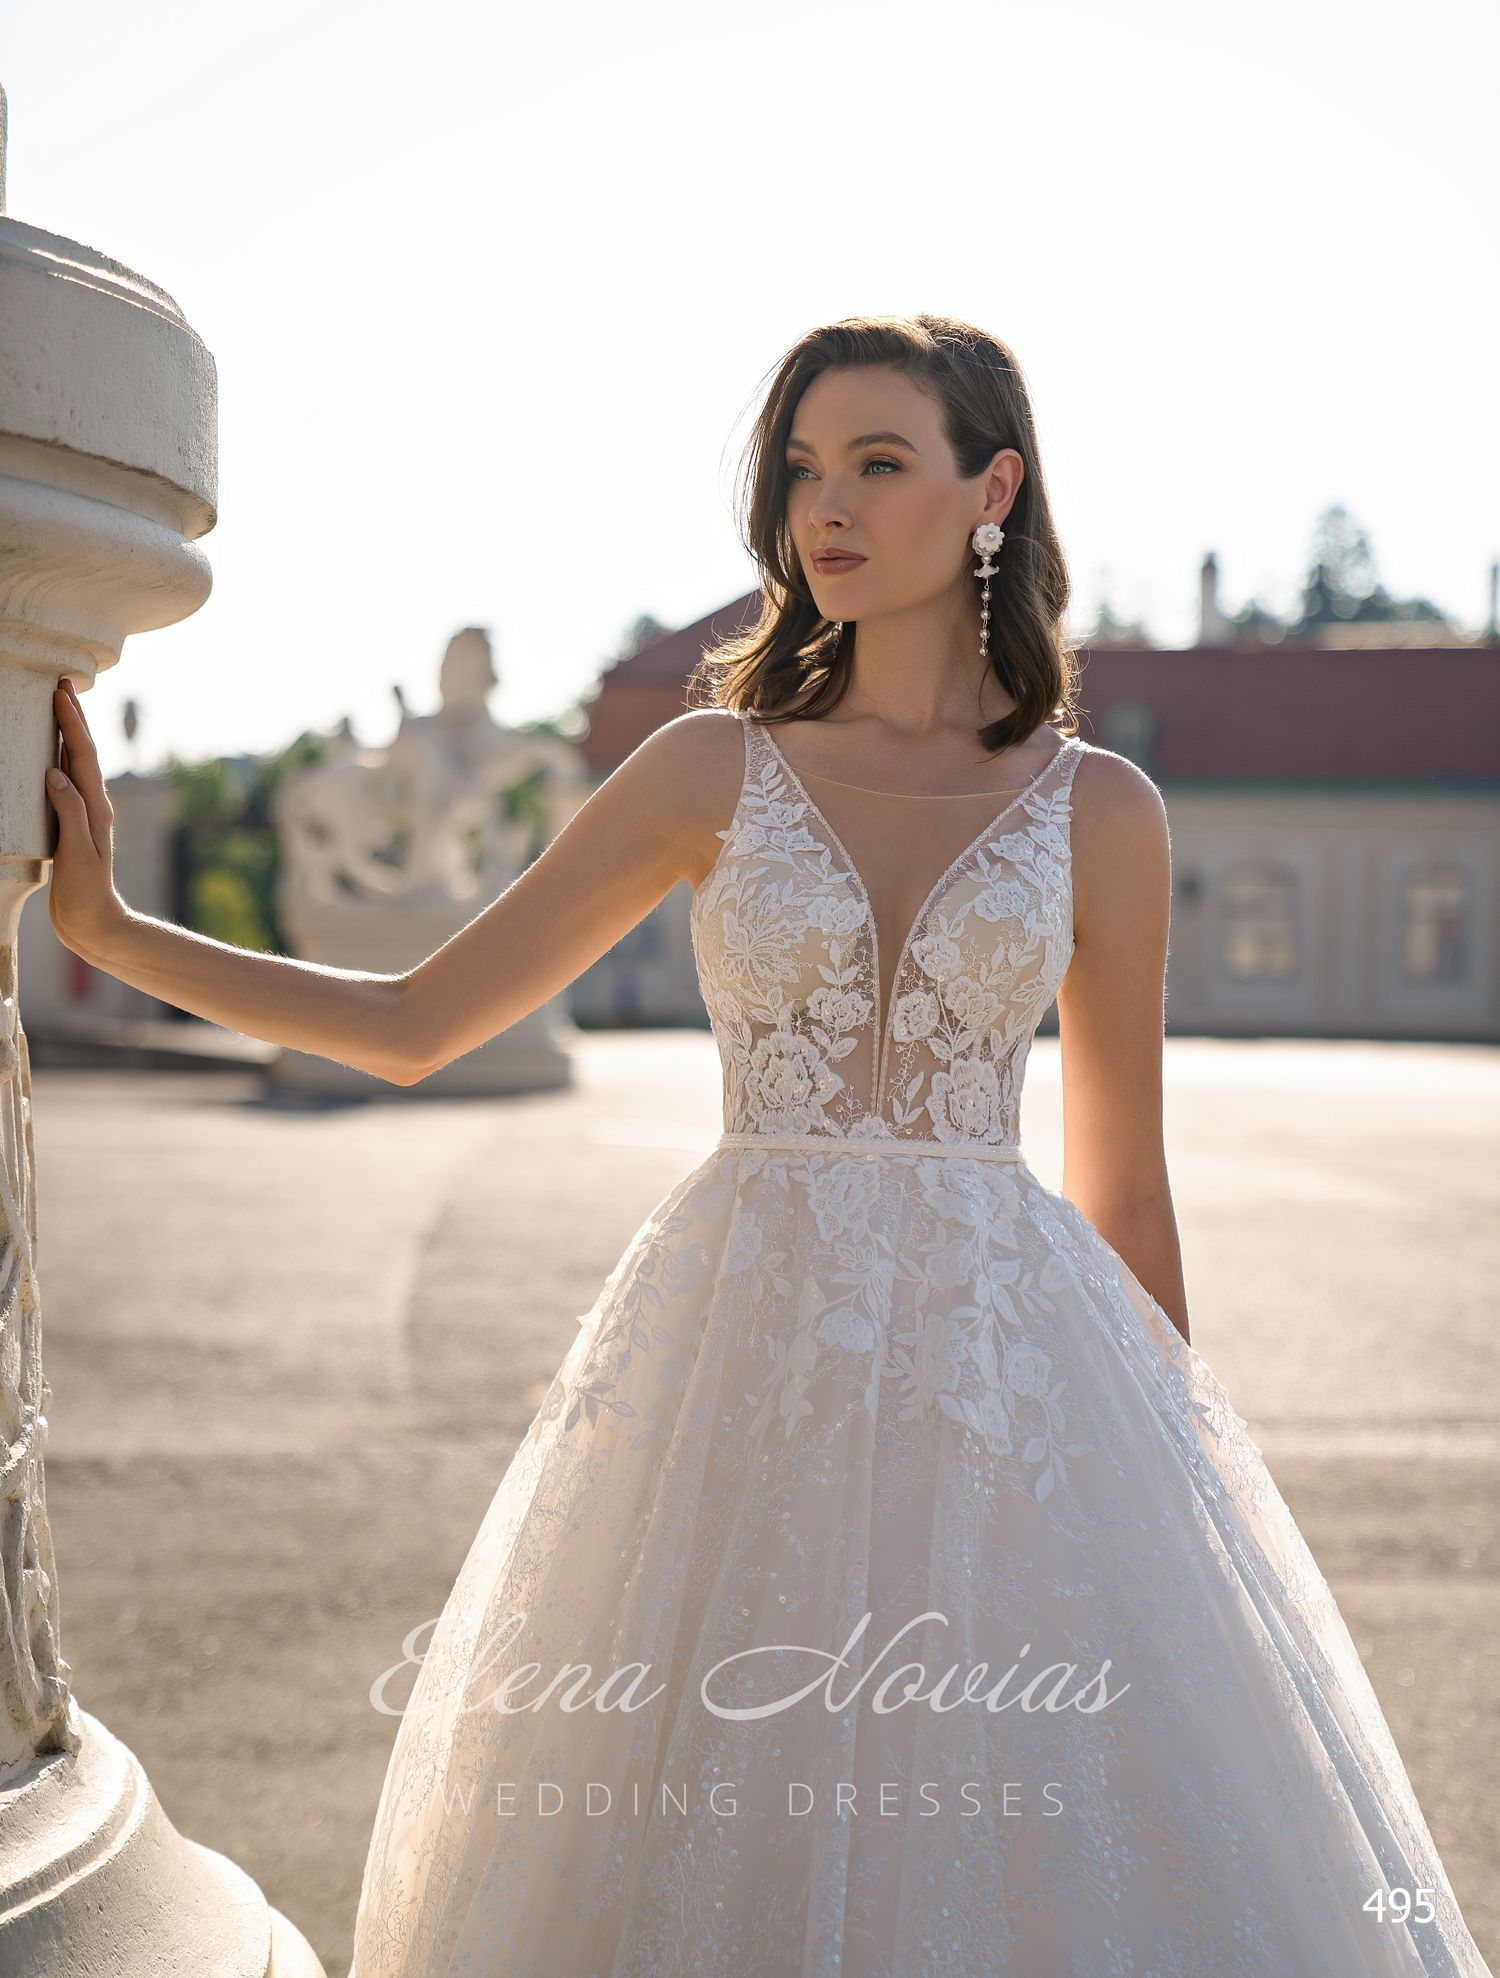 Wedding dresses 495 1